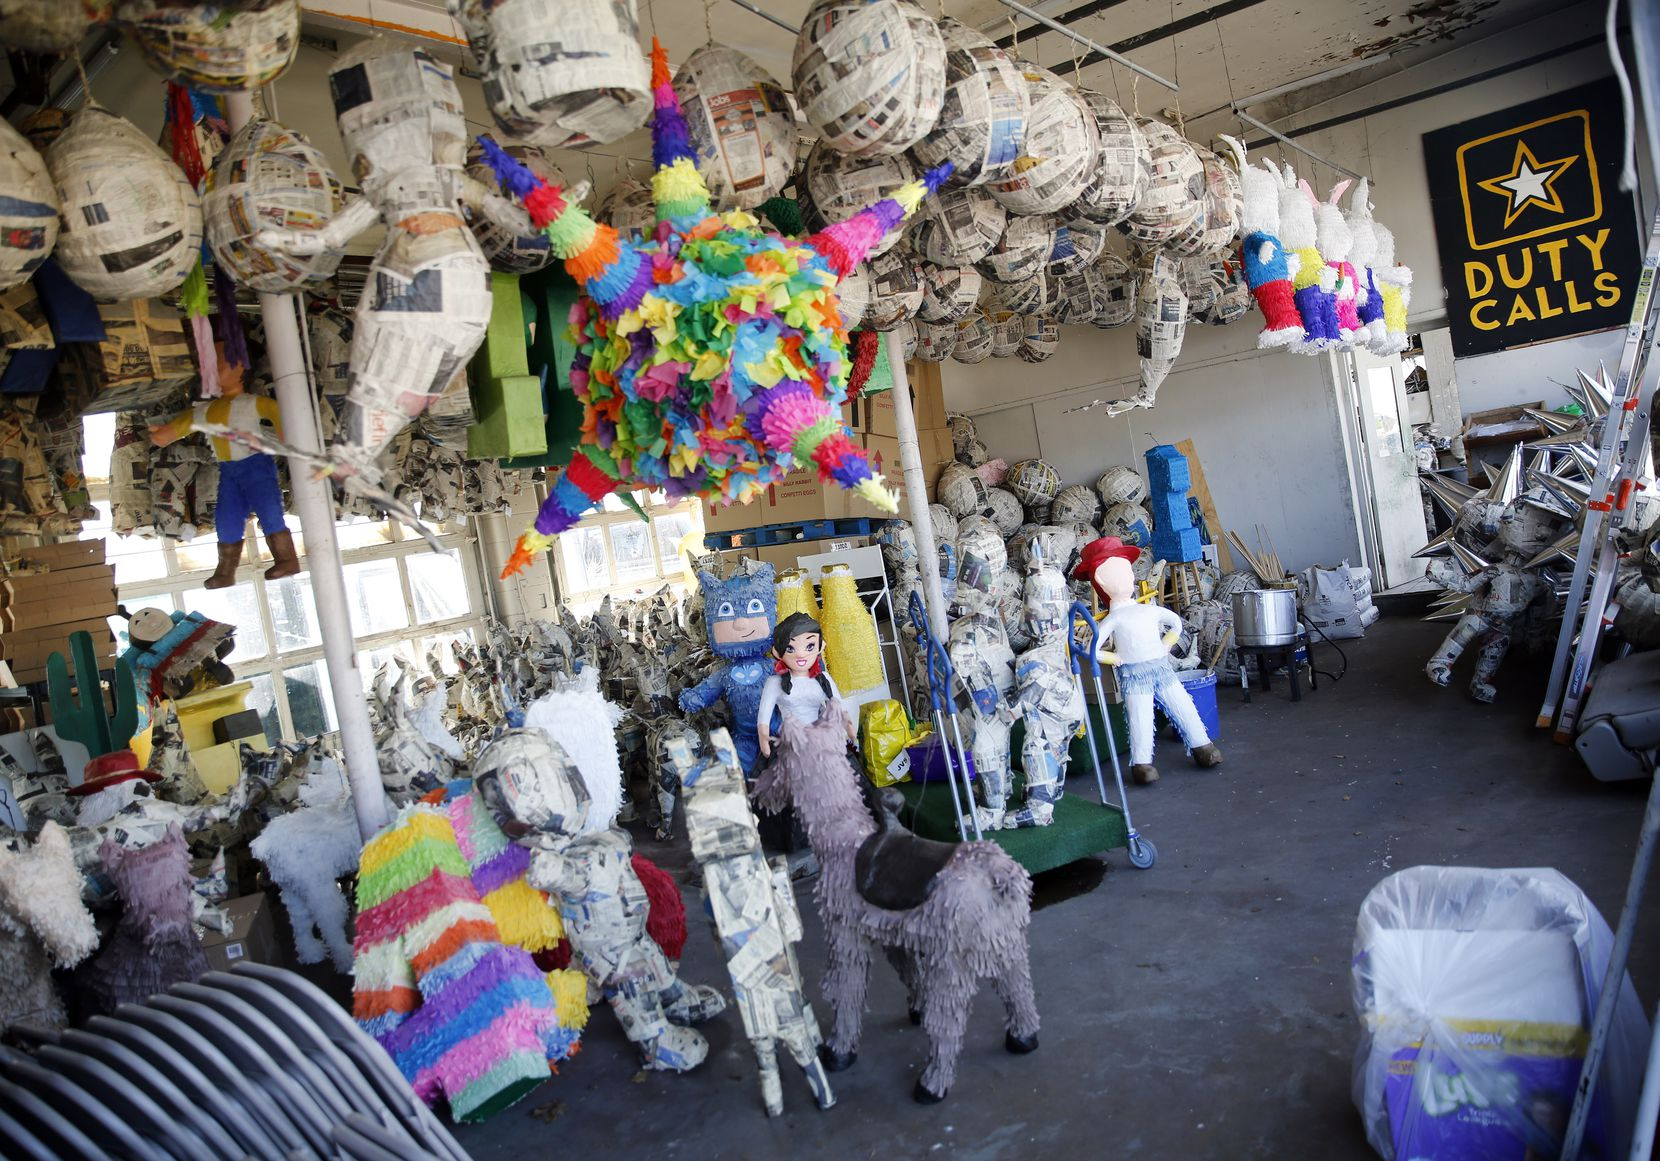 The building next door to ABC Party, which the De La Fuente couple also owns and originally used for a produce store, now houses the family's custom piñata-making operation. Many partial piñatas sit just as they were when the coronavirus pandemic closed down ABC Party.